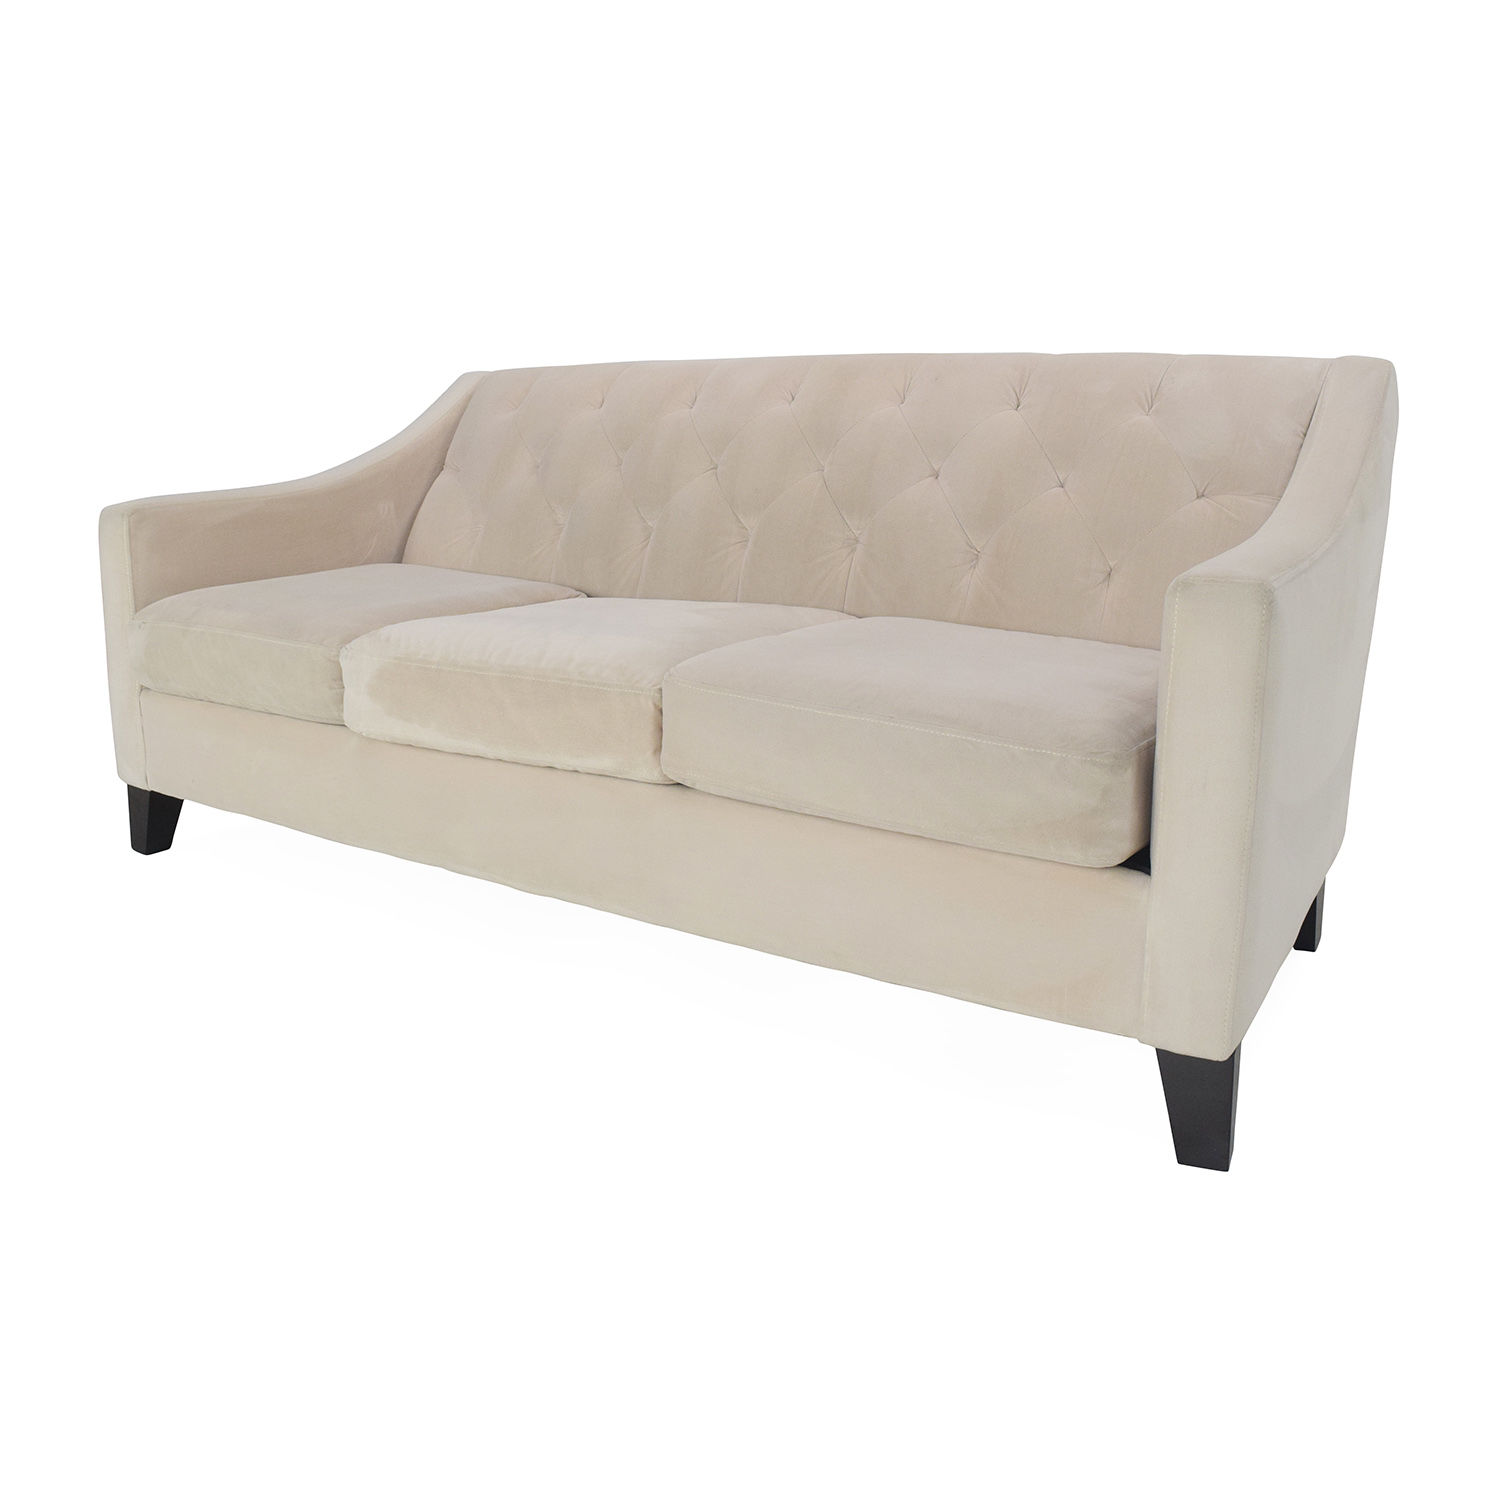 awesome macys chloe sofa portrait-Stylish Macys Chloe sofa Design